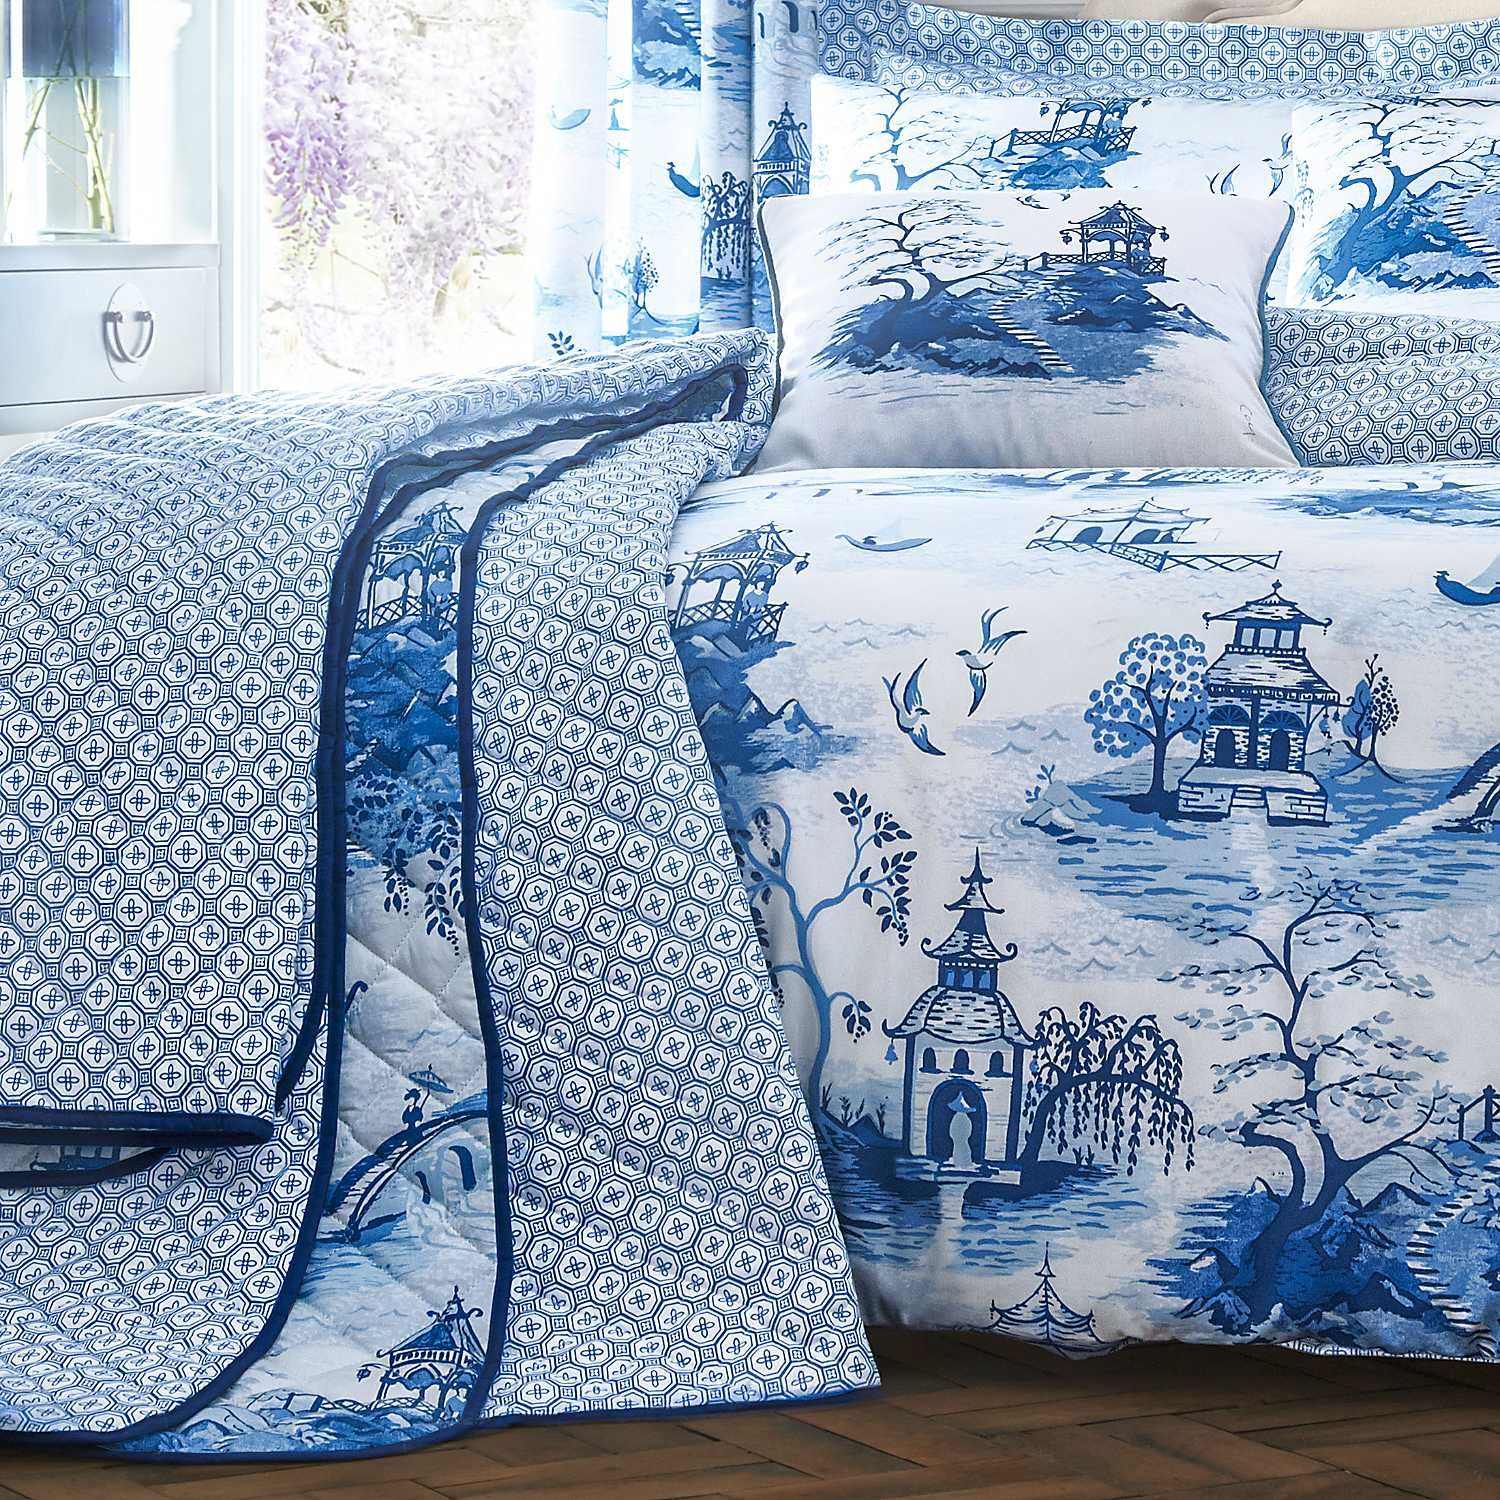 chinoiserie bedspread blue and